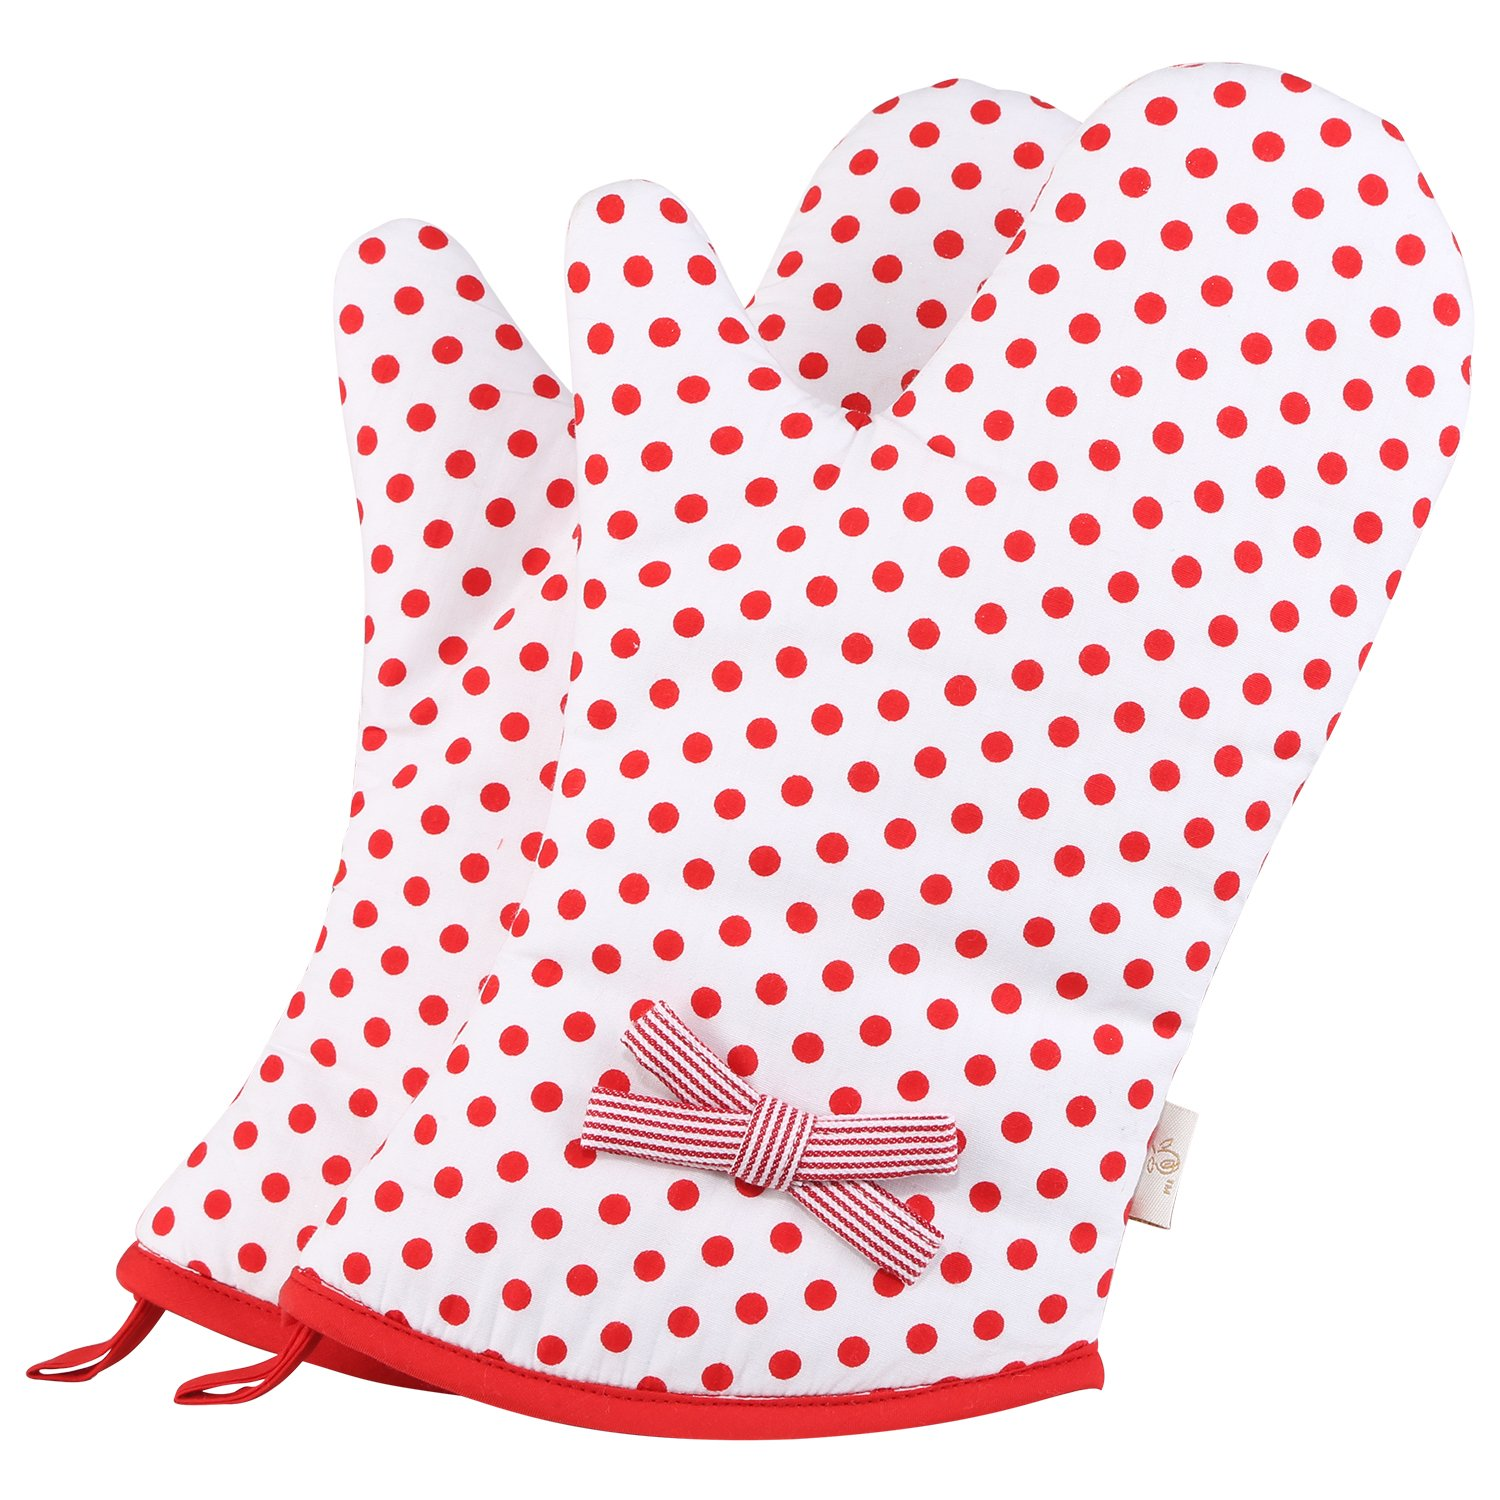 Neoviva Heat Resistant Quilting Oven Gloves for Adult Women in Everyday Kitchen, Set of 2, Polka Dots Cherry Tomato